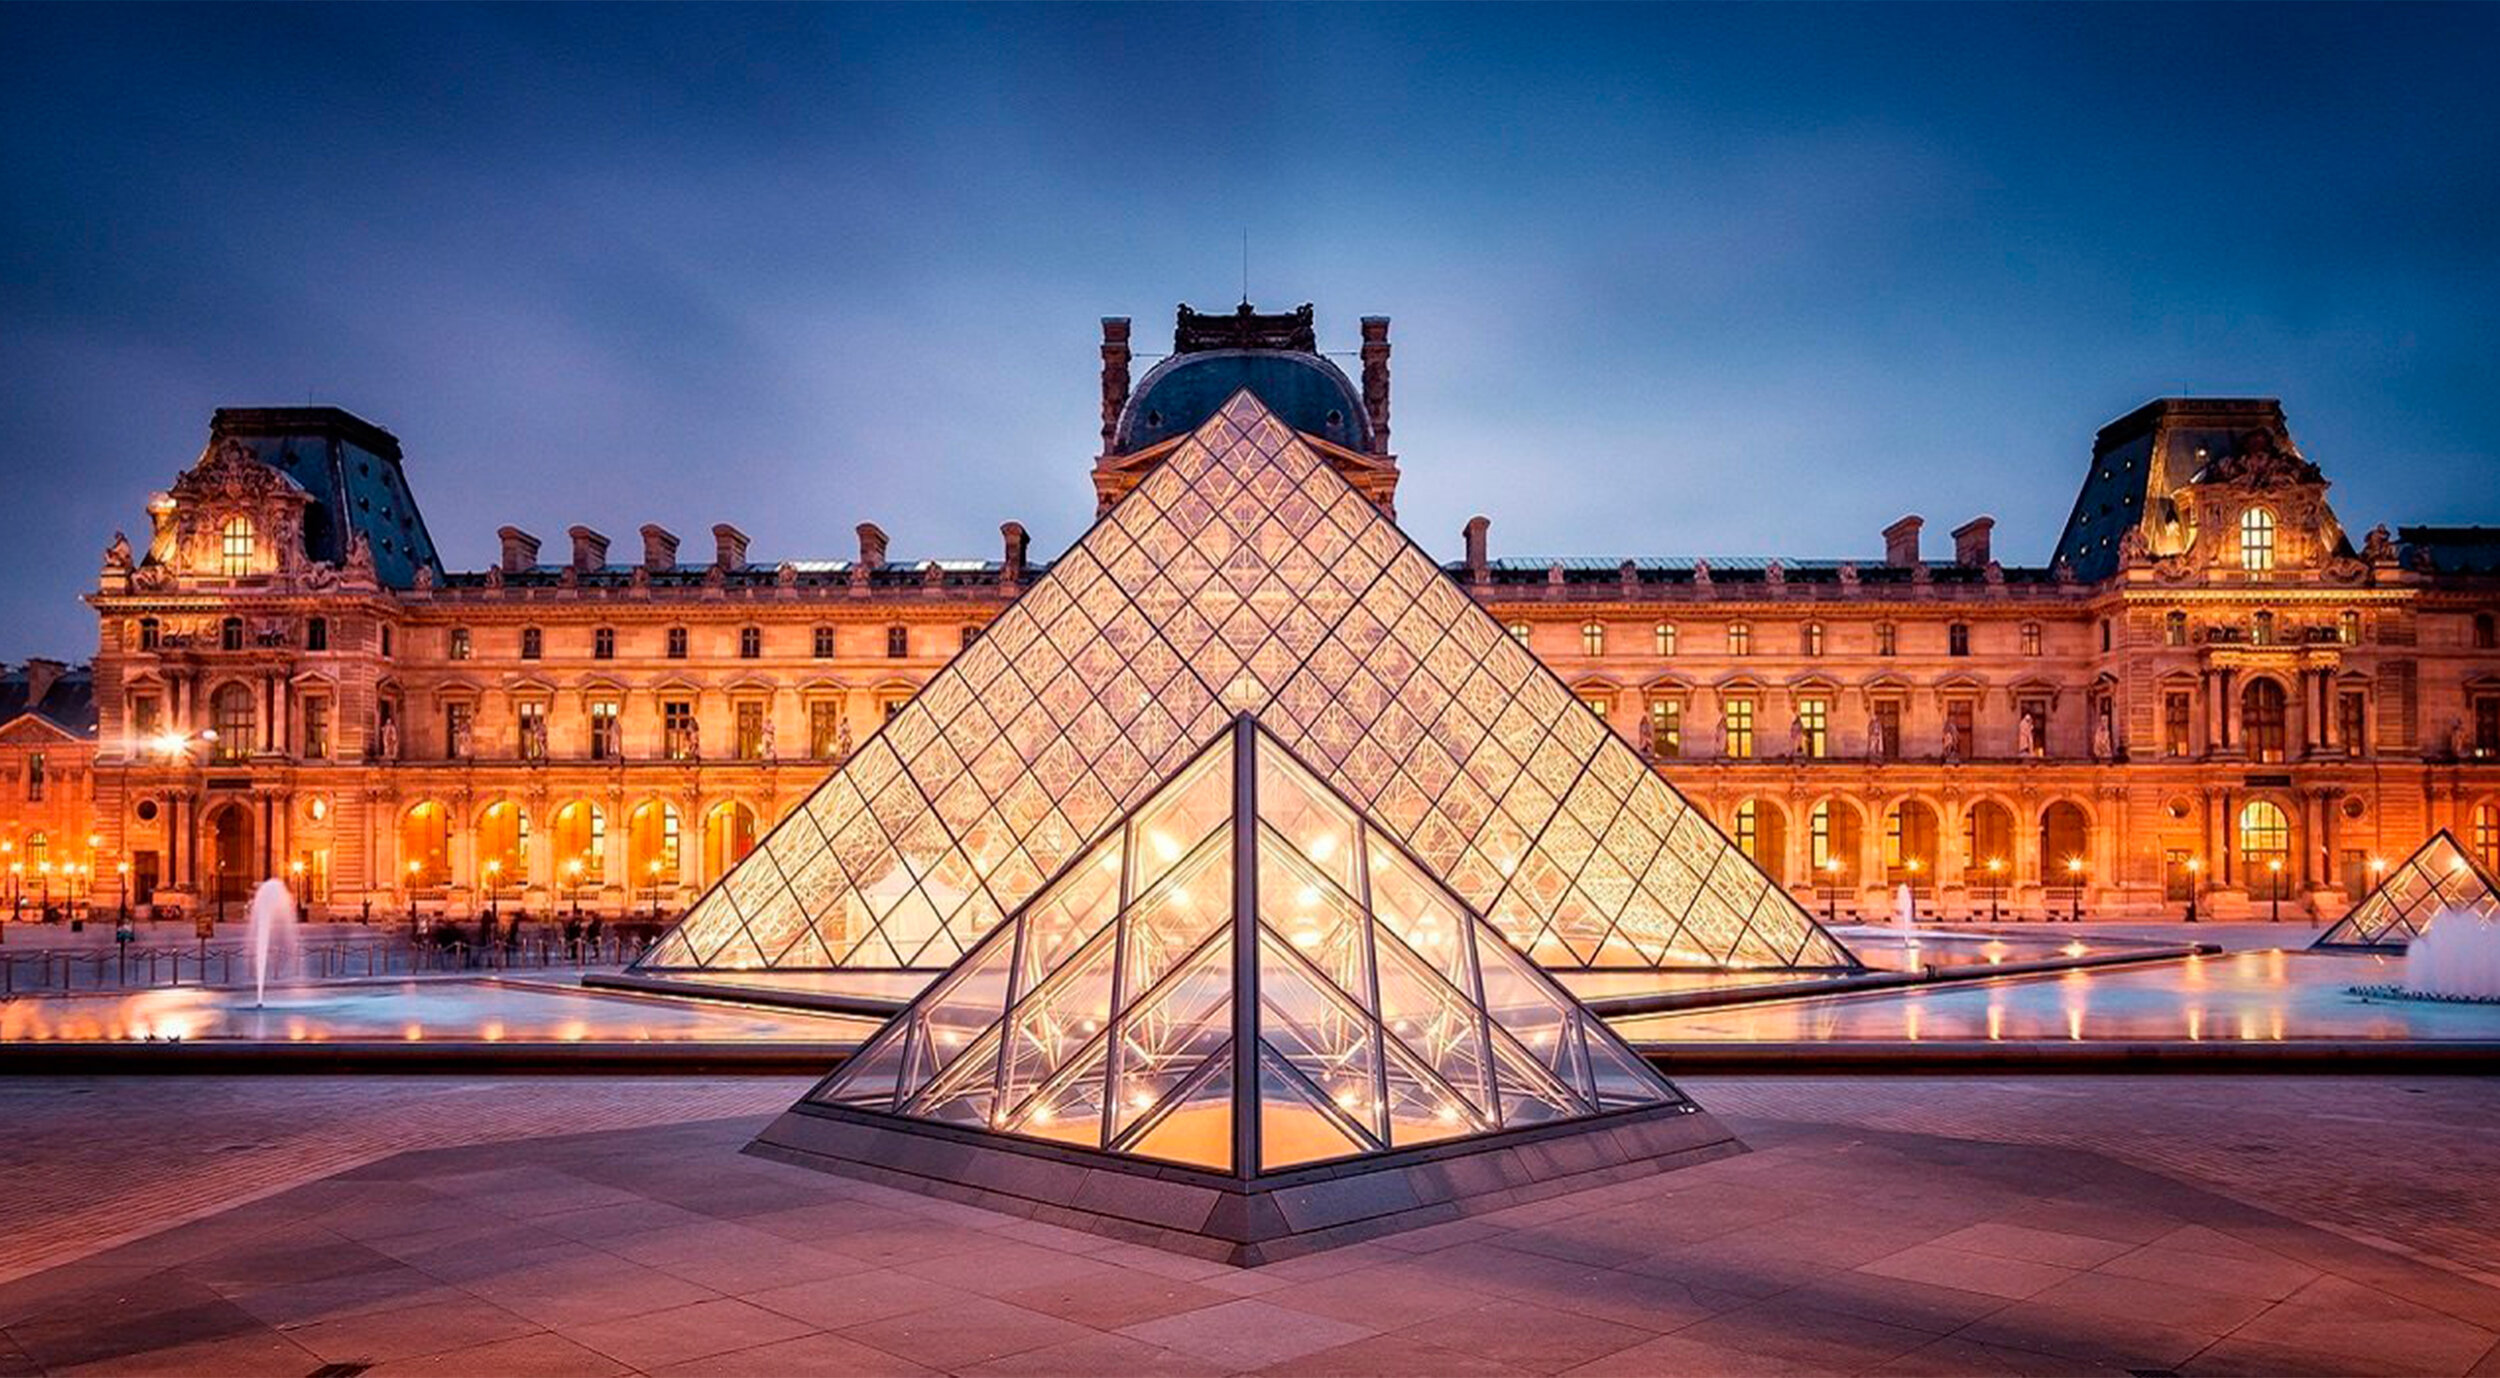 6- Museu do Louvre -